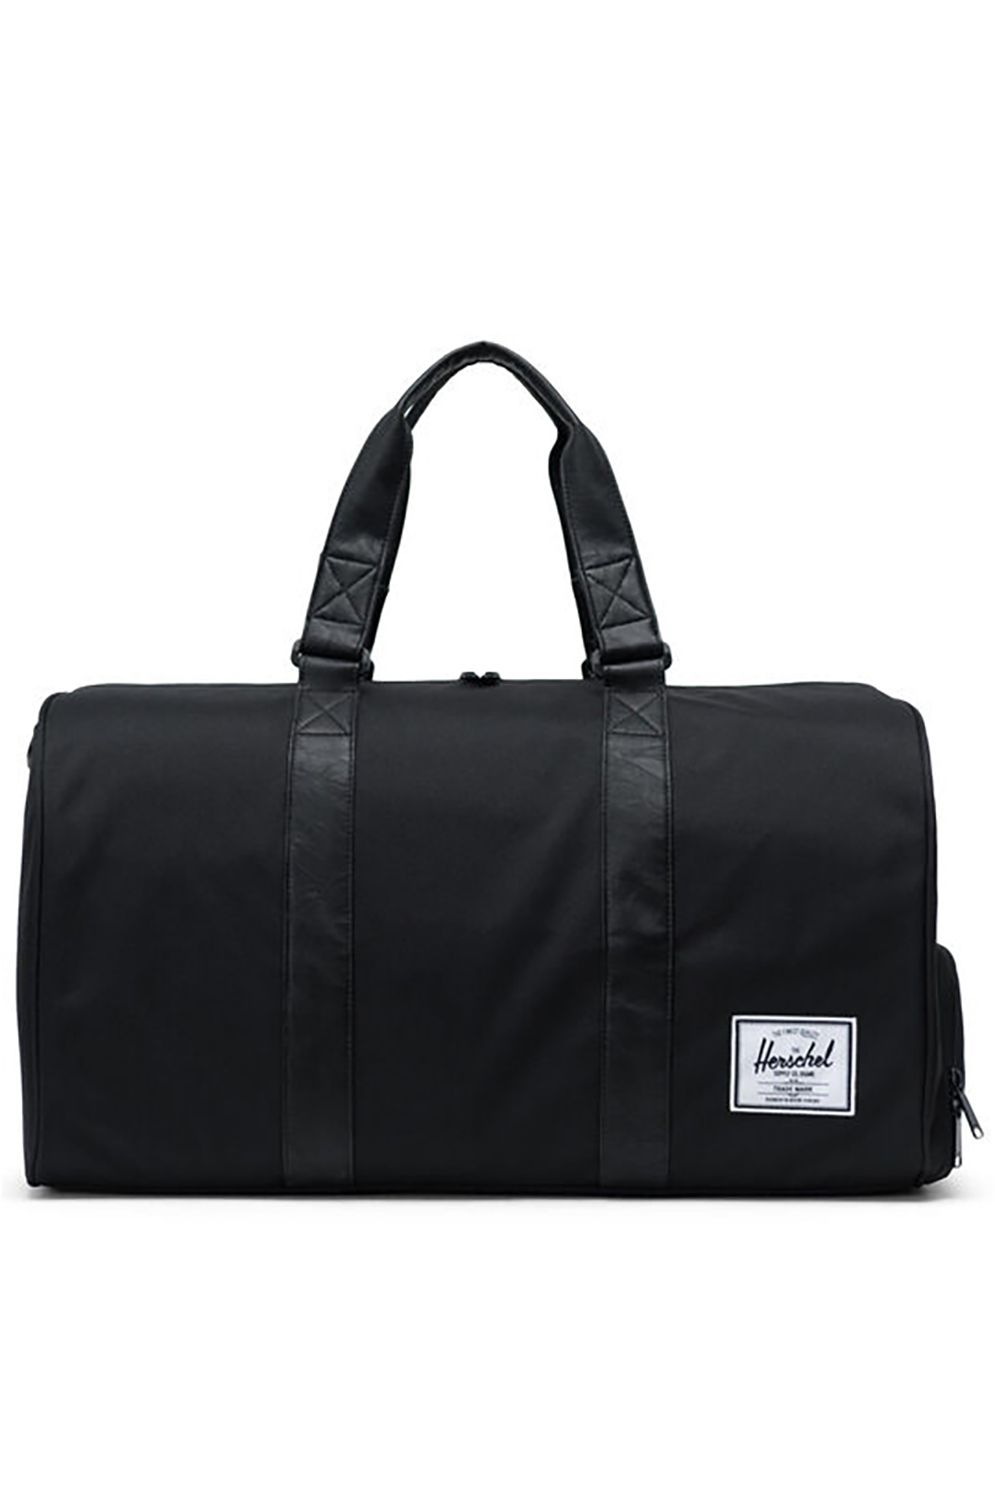 Saco Herschel NOVEL Black/Black